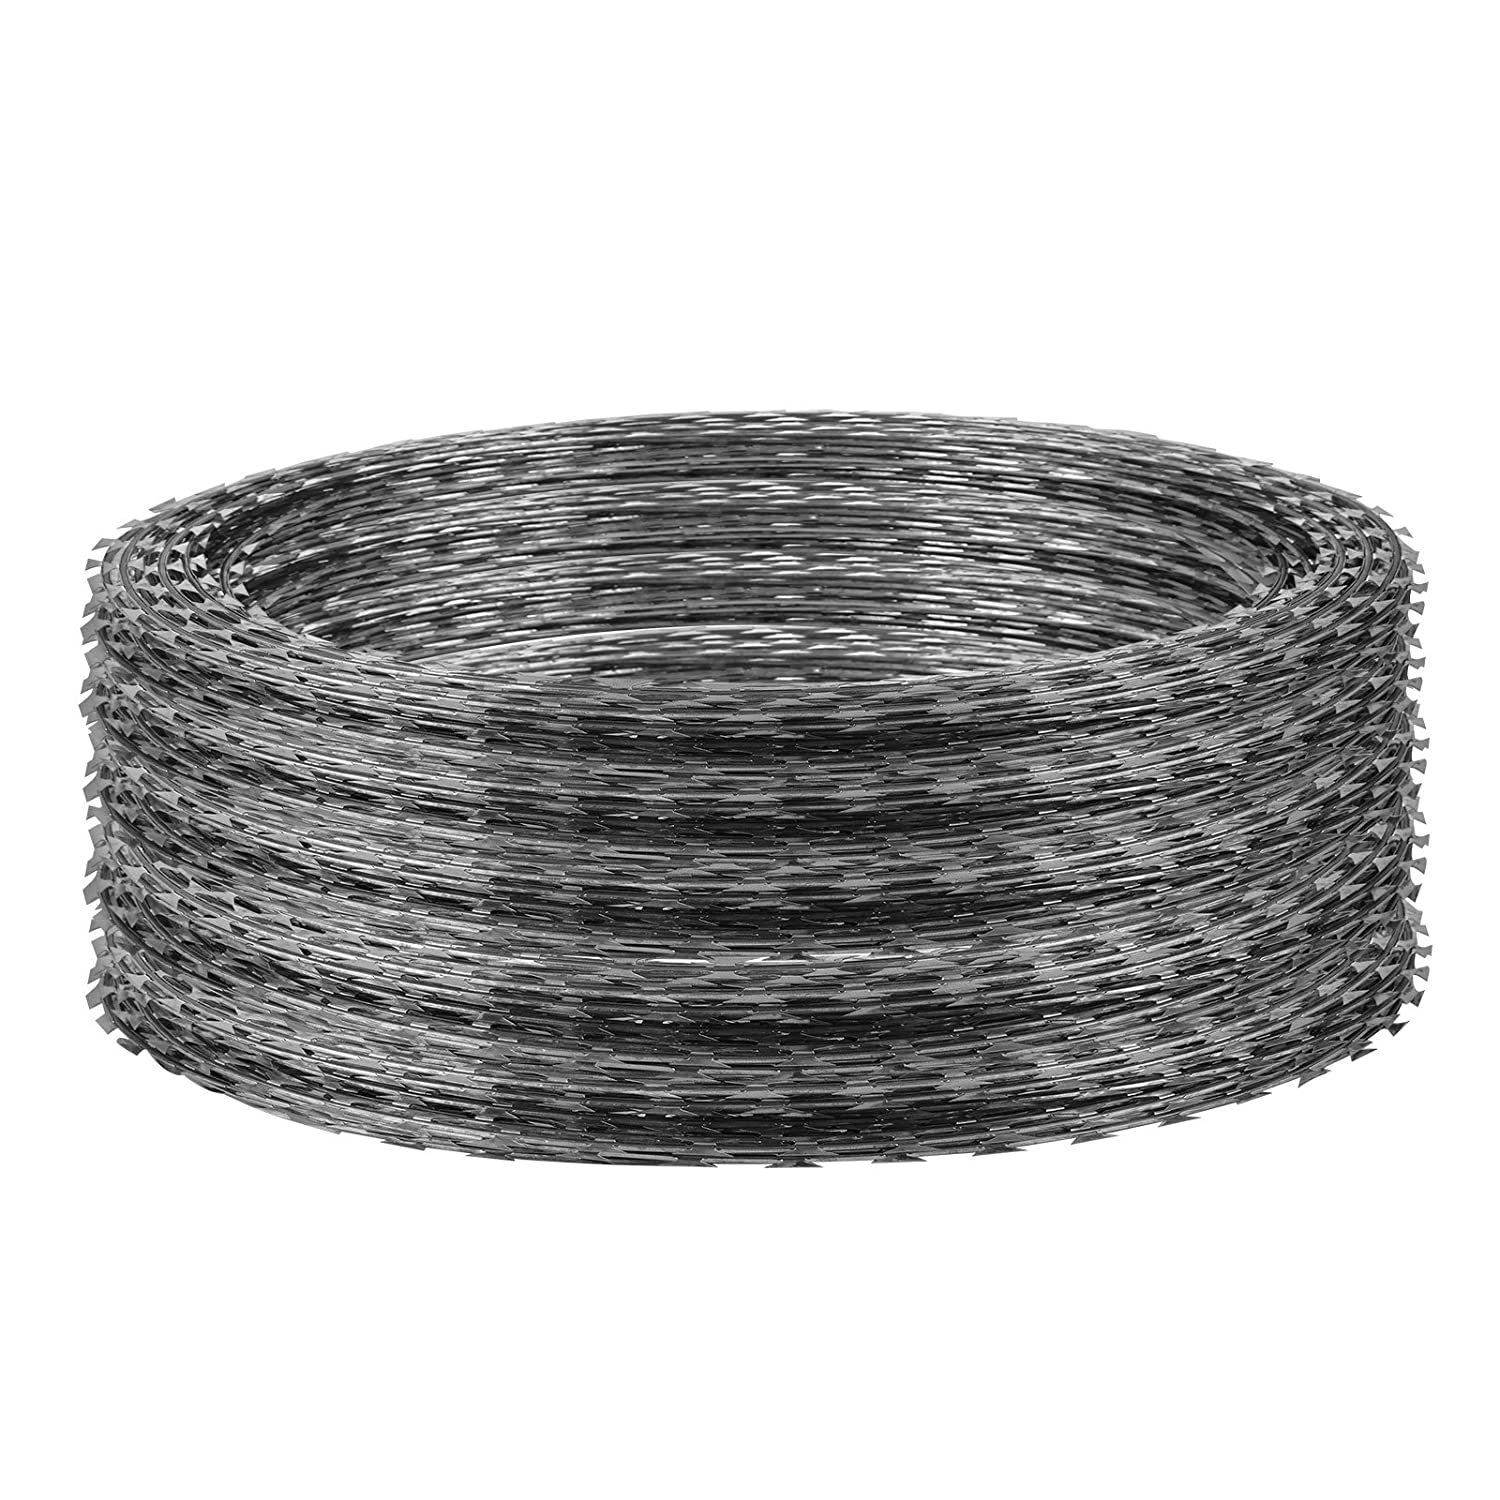 OrangeA Razor Wire Galvanized Barbed Wire Razor Ribbon Barbed Wire 18